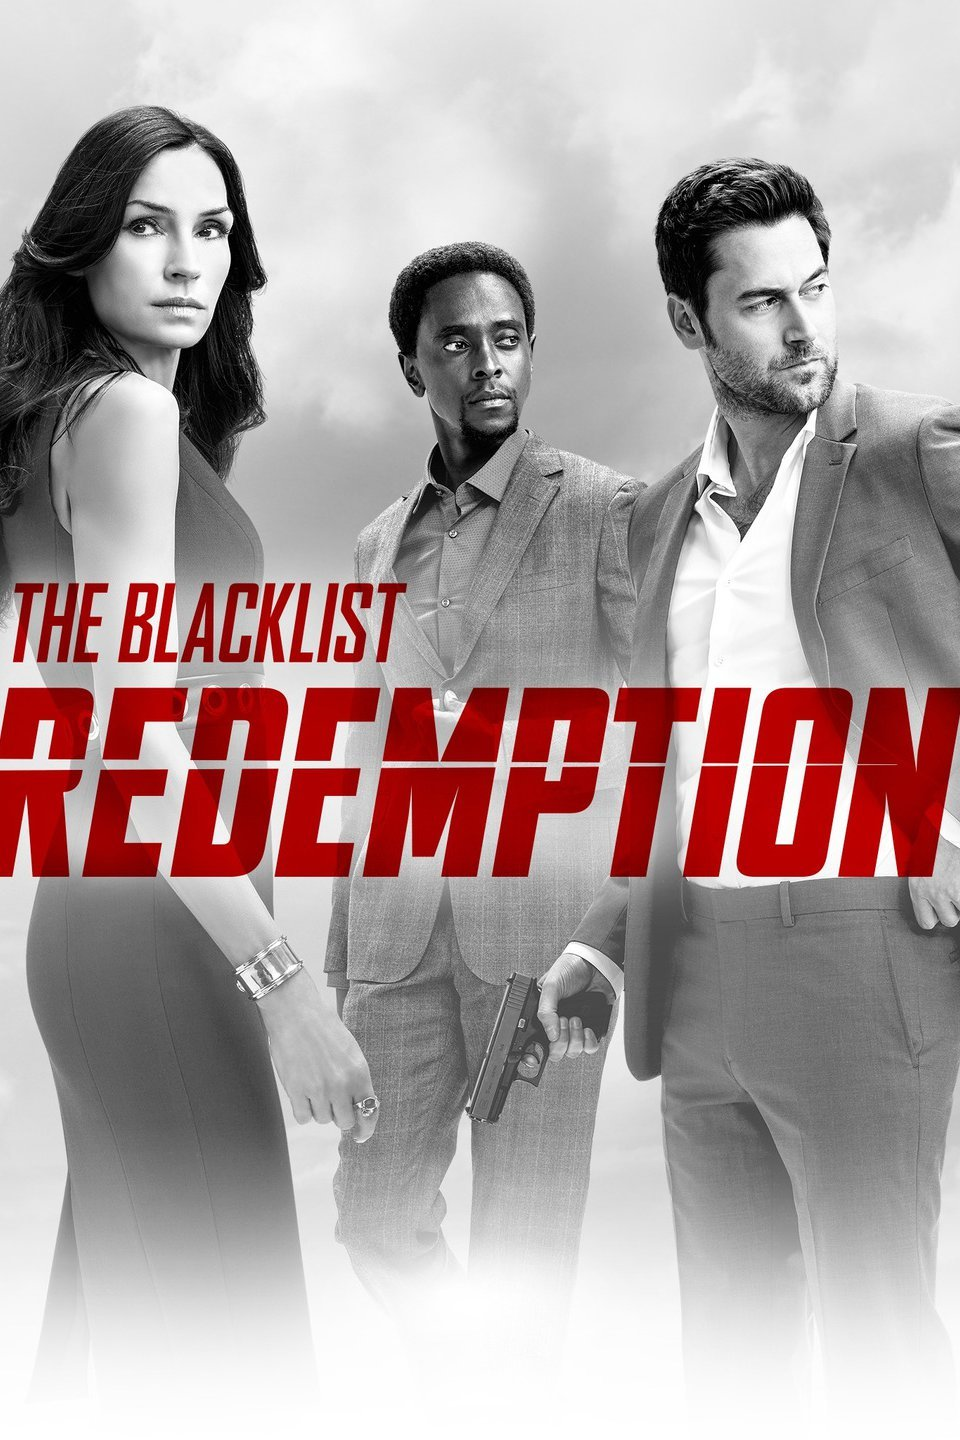 The Blacklist: Redemption-The Blacklist: Redemption